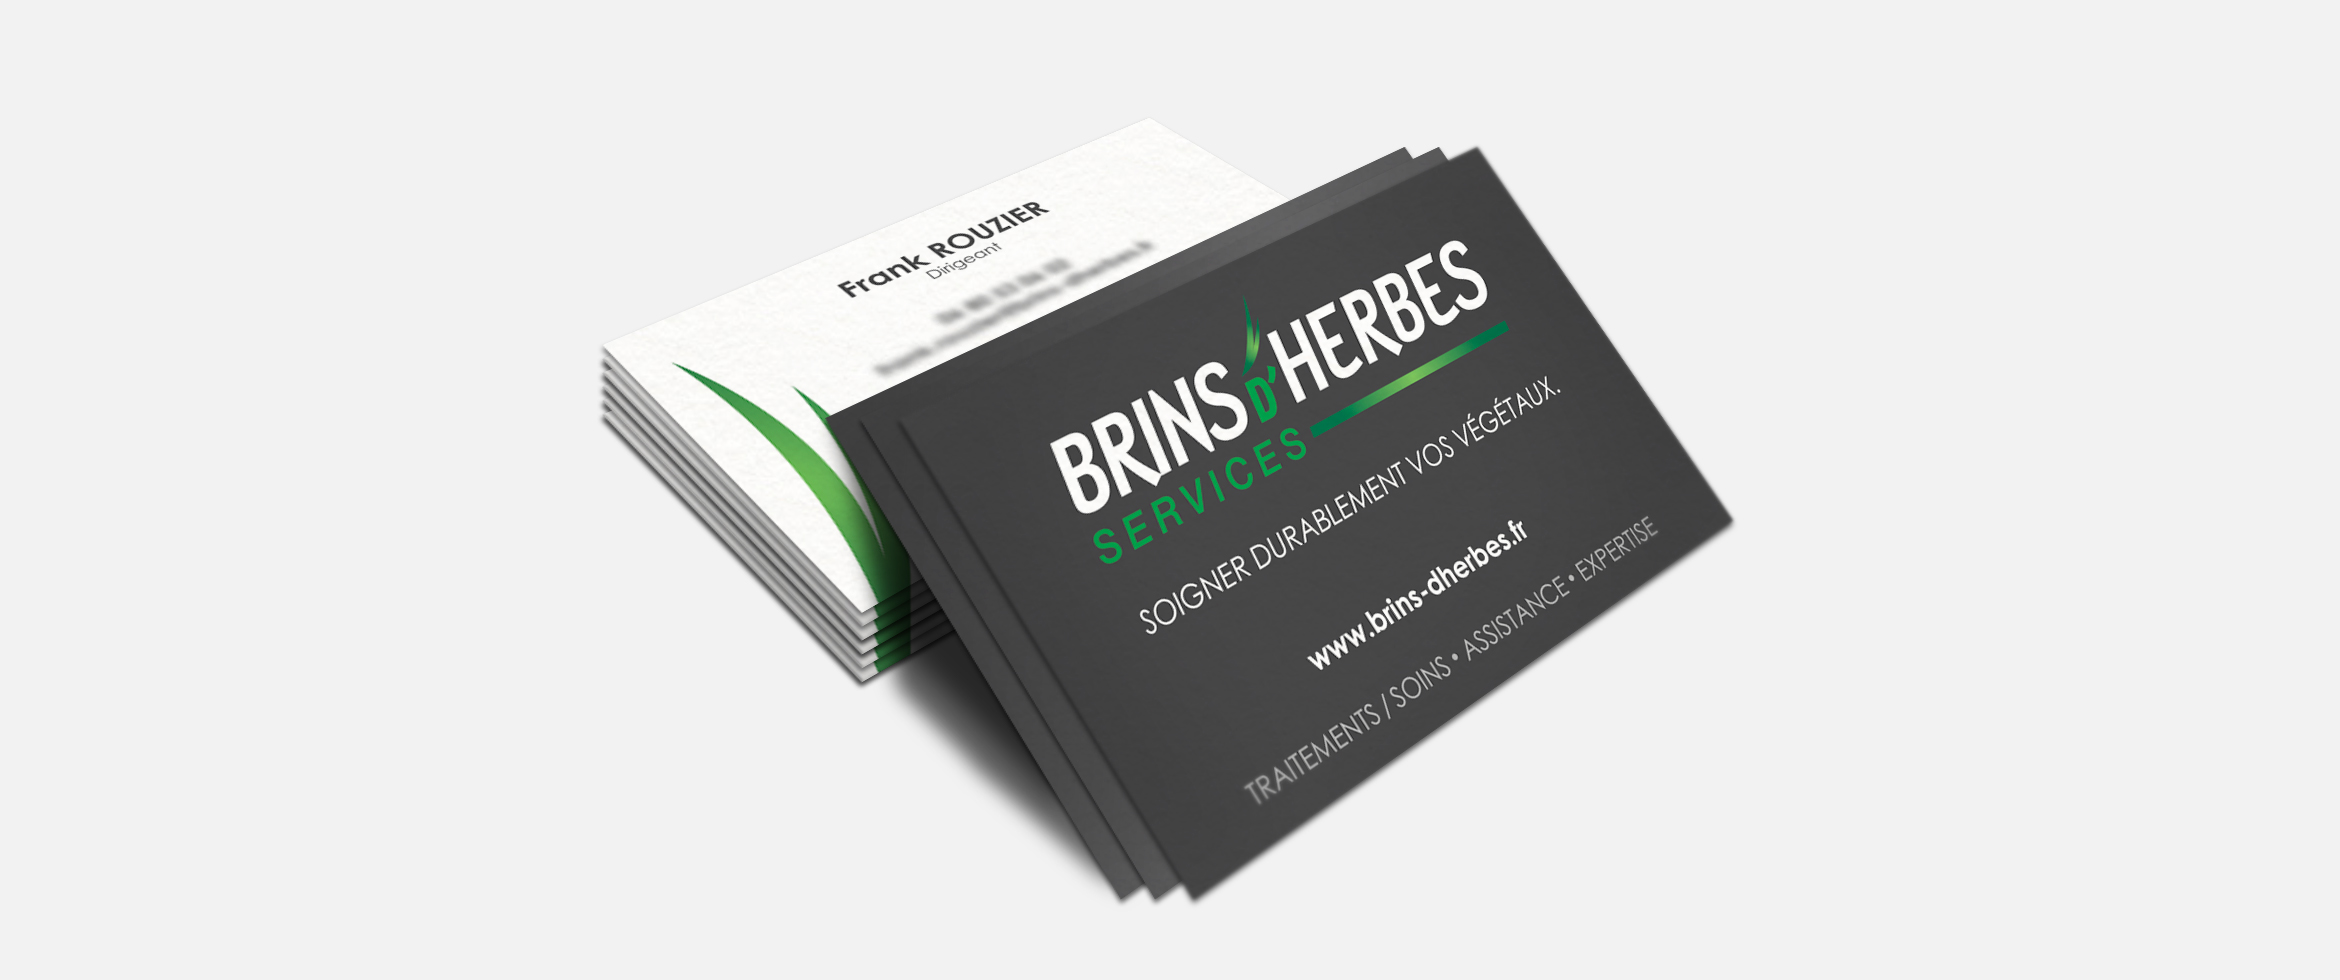 Brins DHerbes Services